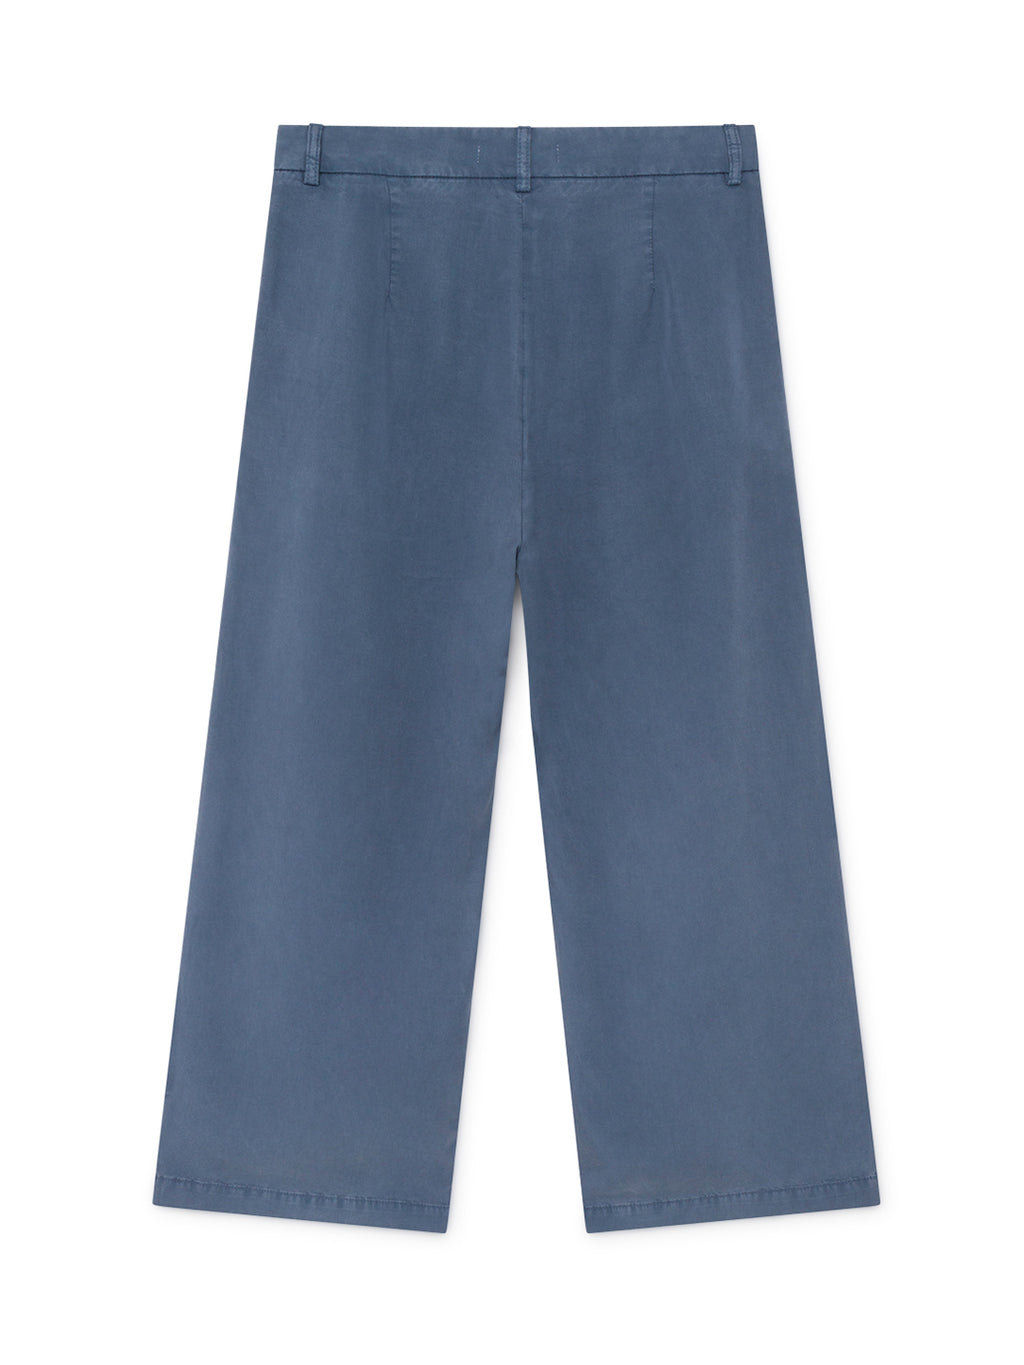 TWOTHIRDS Womens Pants: Hashima - China Blue back